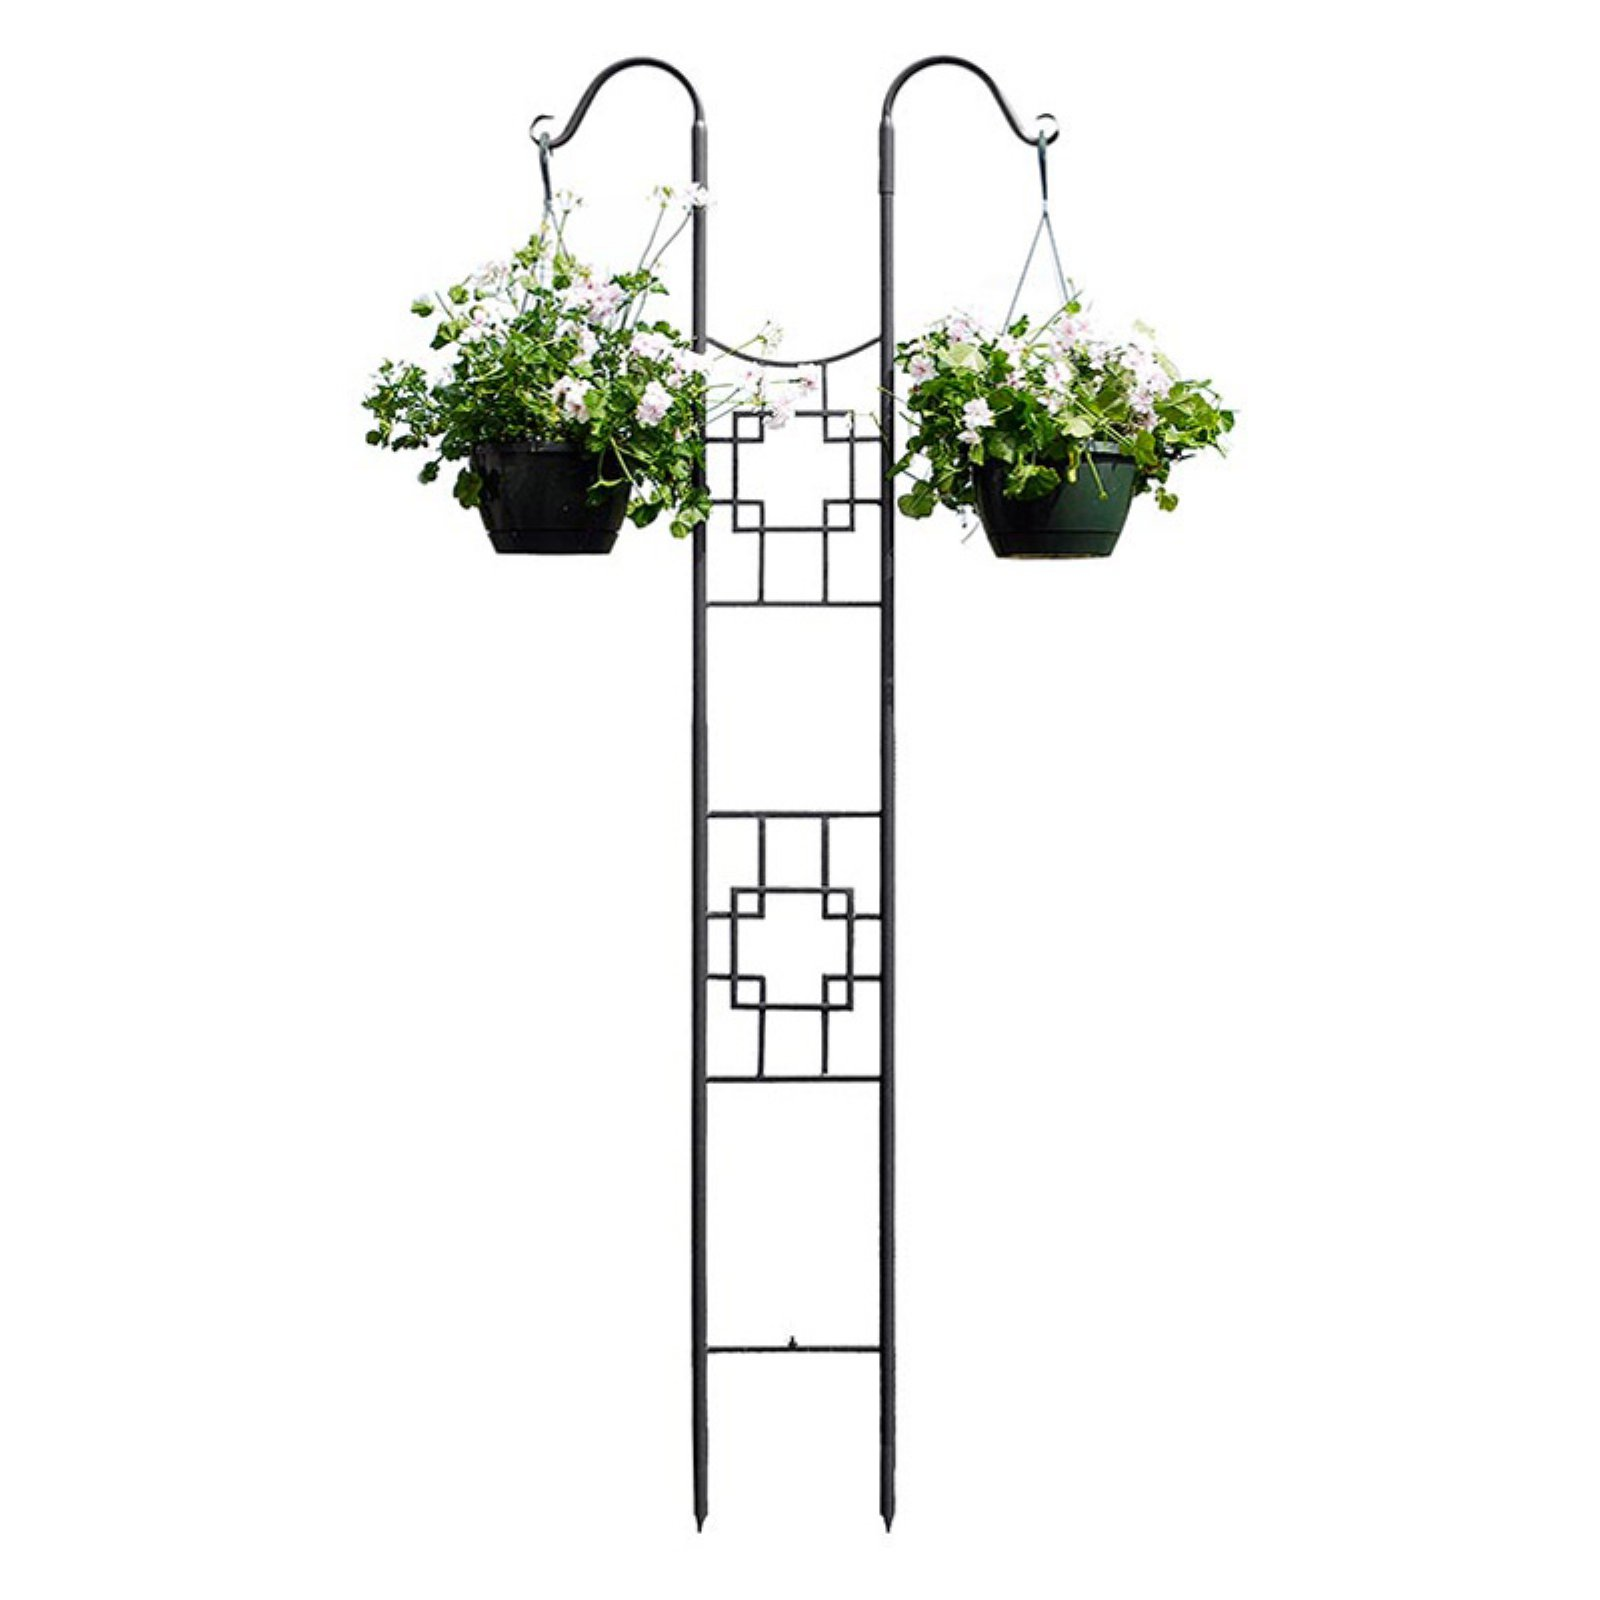 Achla Designs Square-on-Squares Double Pole Trellis by Minuteman International